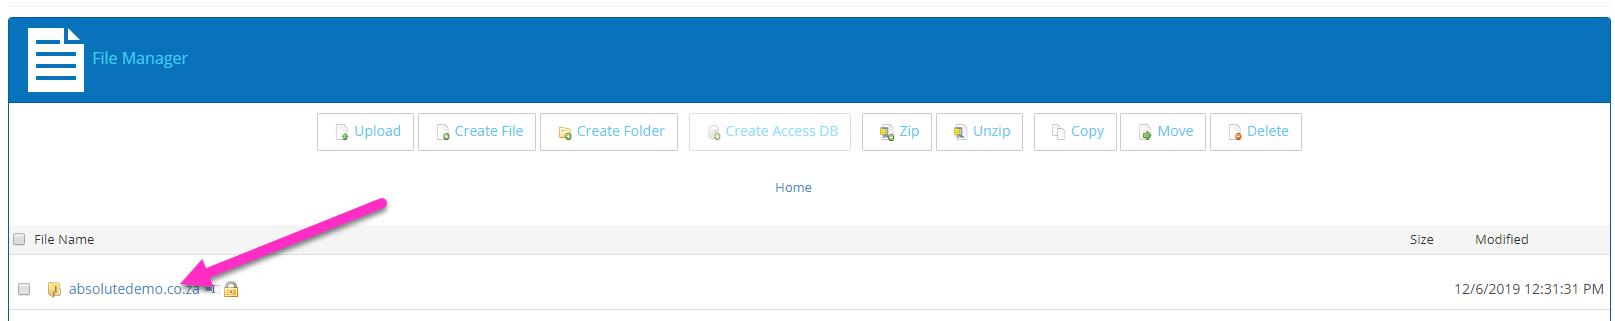 absolutehosting.co.za solid control panel file manager